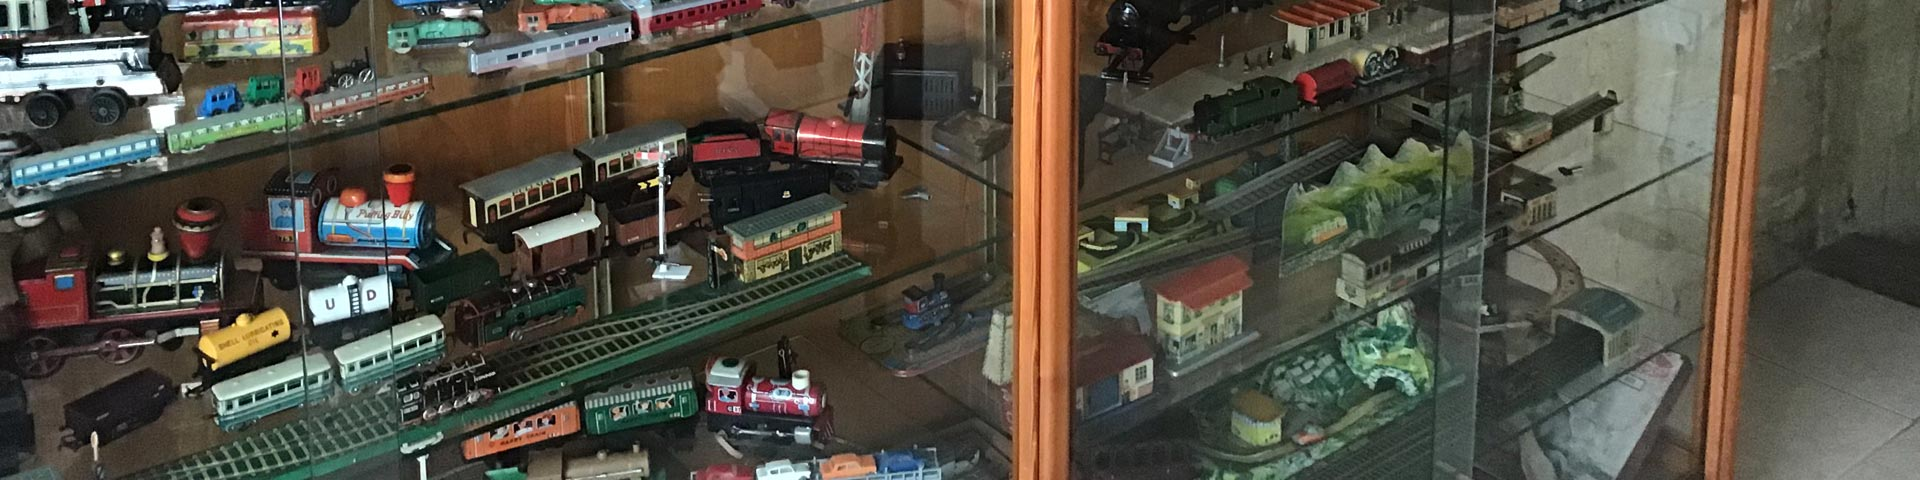 Model Railway Cabinet of Trains and Track at Premier Train Sales